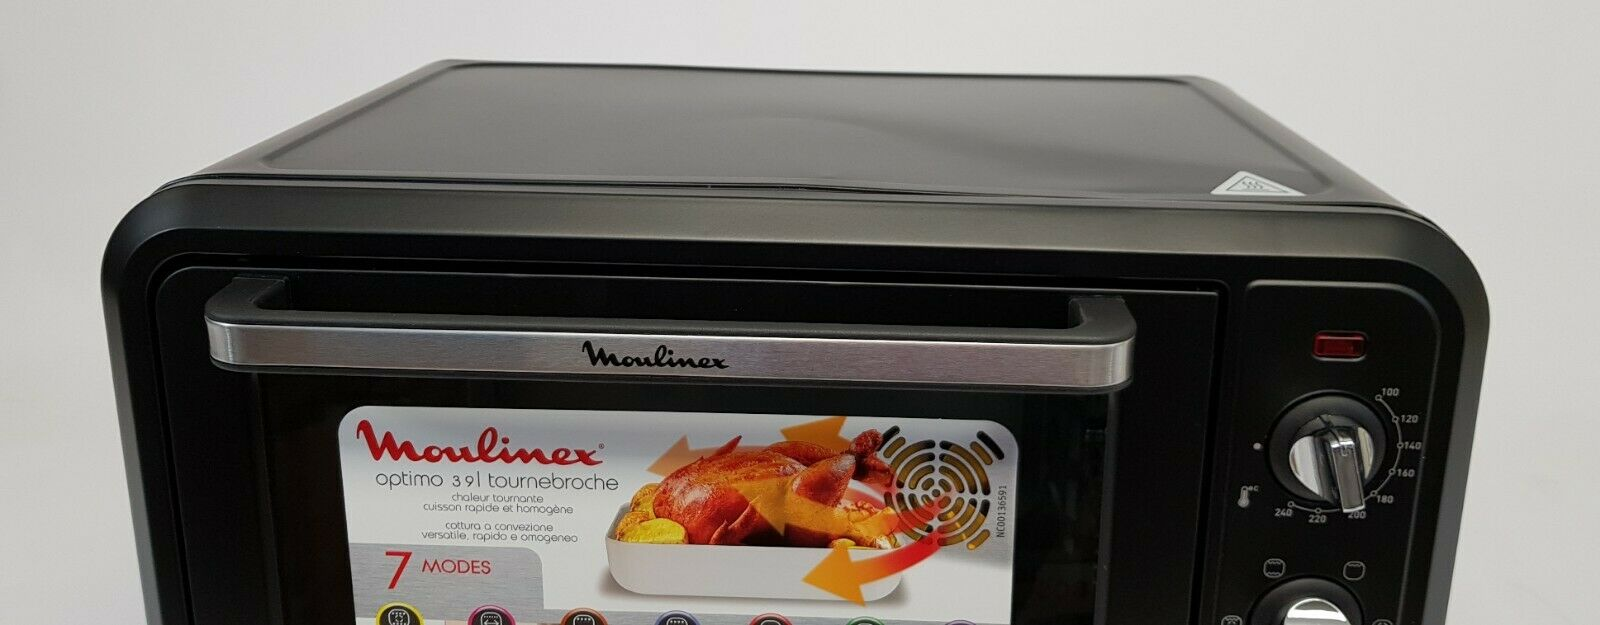 Oven Losstaand Moulinex Ox485810 Optimo 39 L Mini Backoffen Mini Four